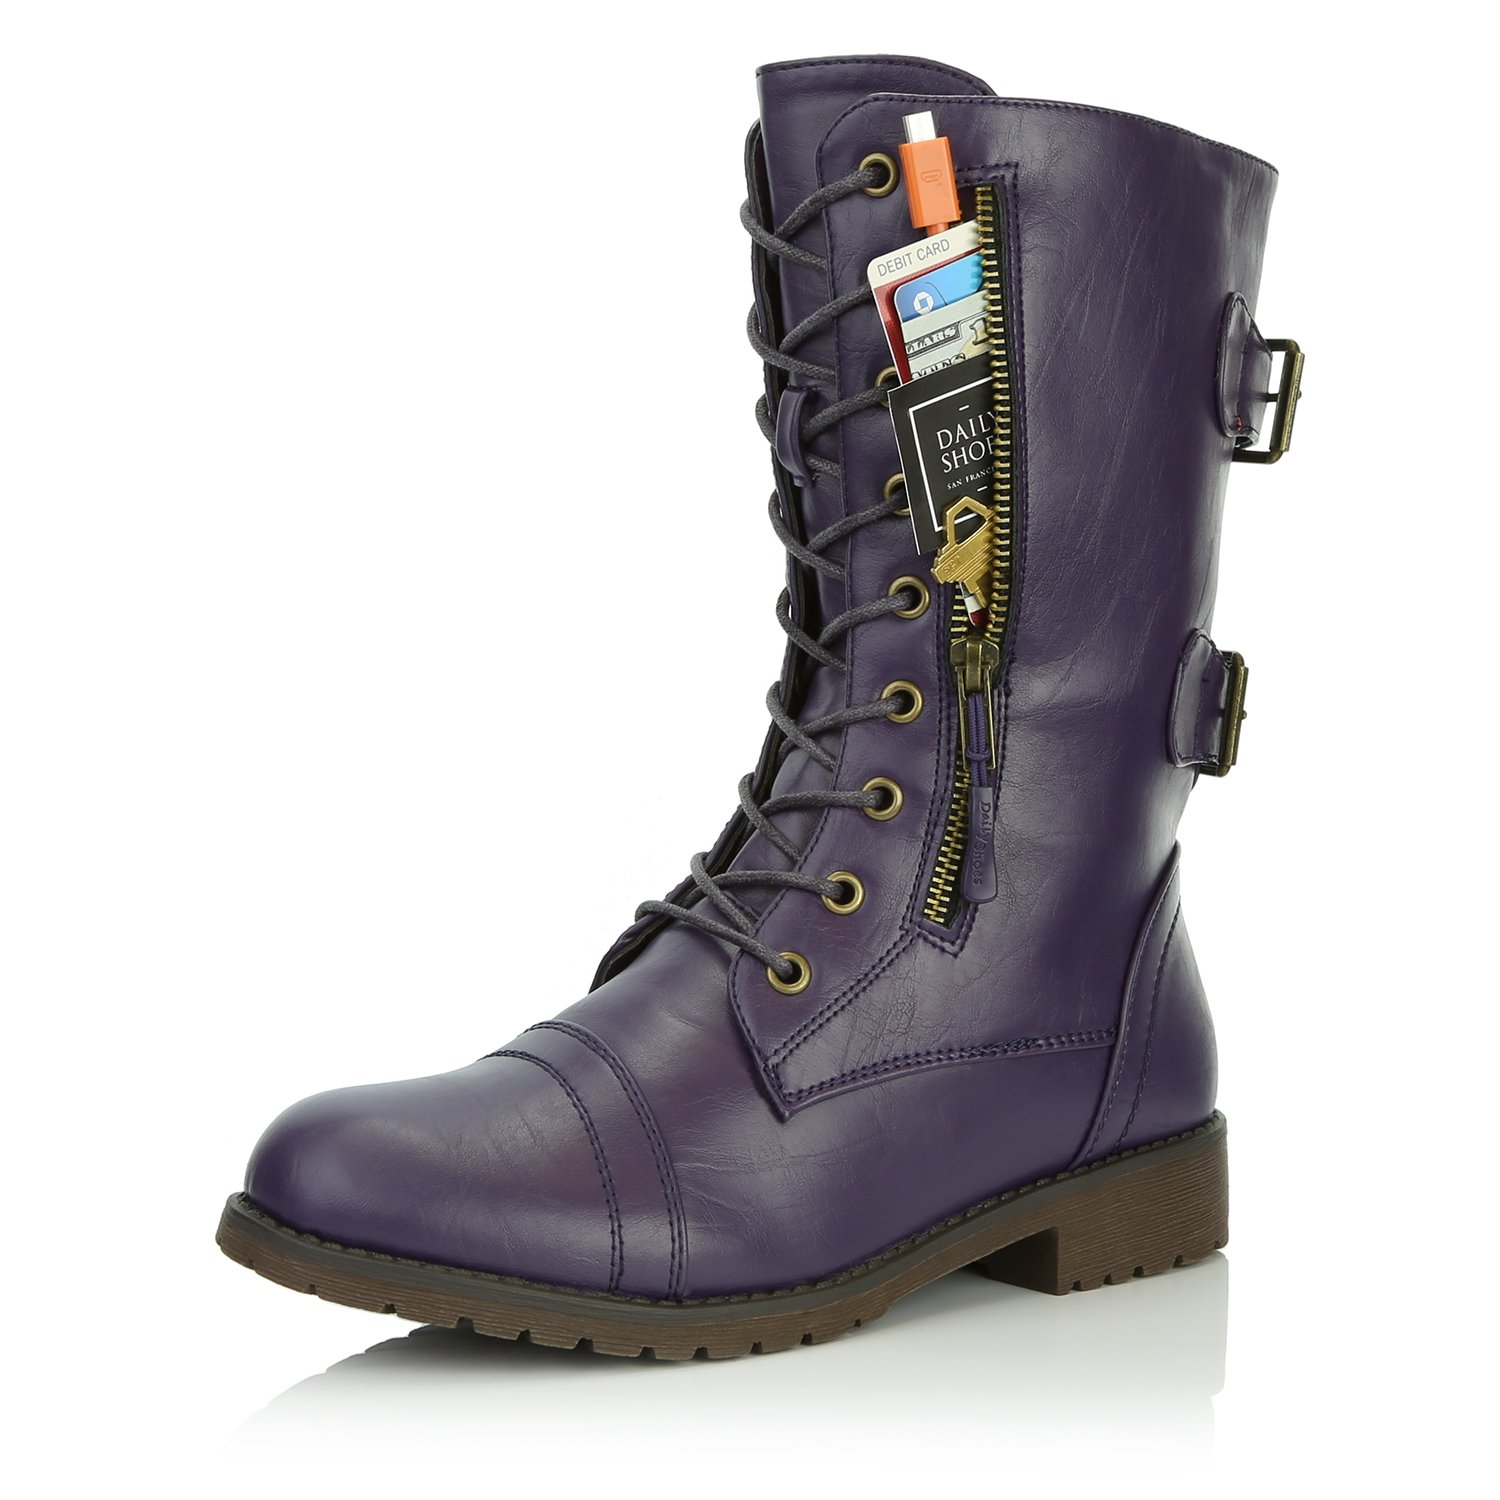 DailyShoes Women's Military Lace Up Buckle Combat Boots Mid Knee High Exclusive Credit Card Pocket, Sweet Purple, 7.5 B(M)